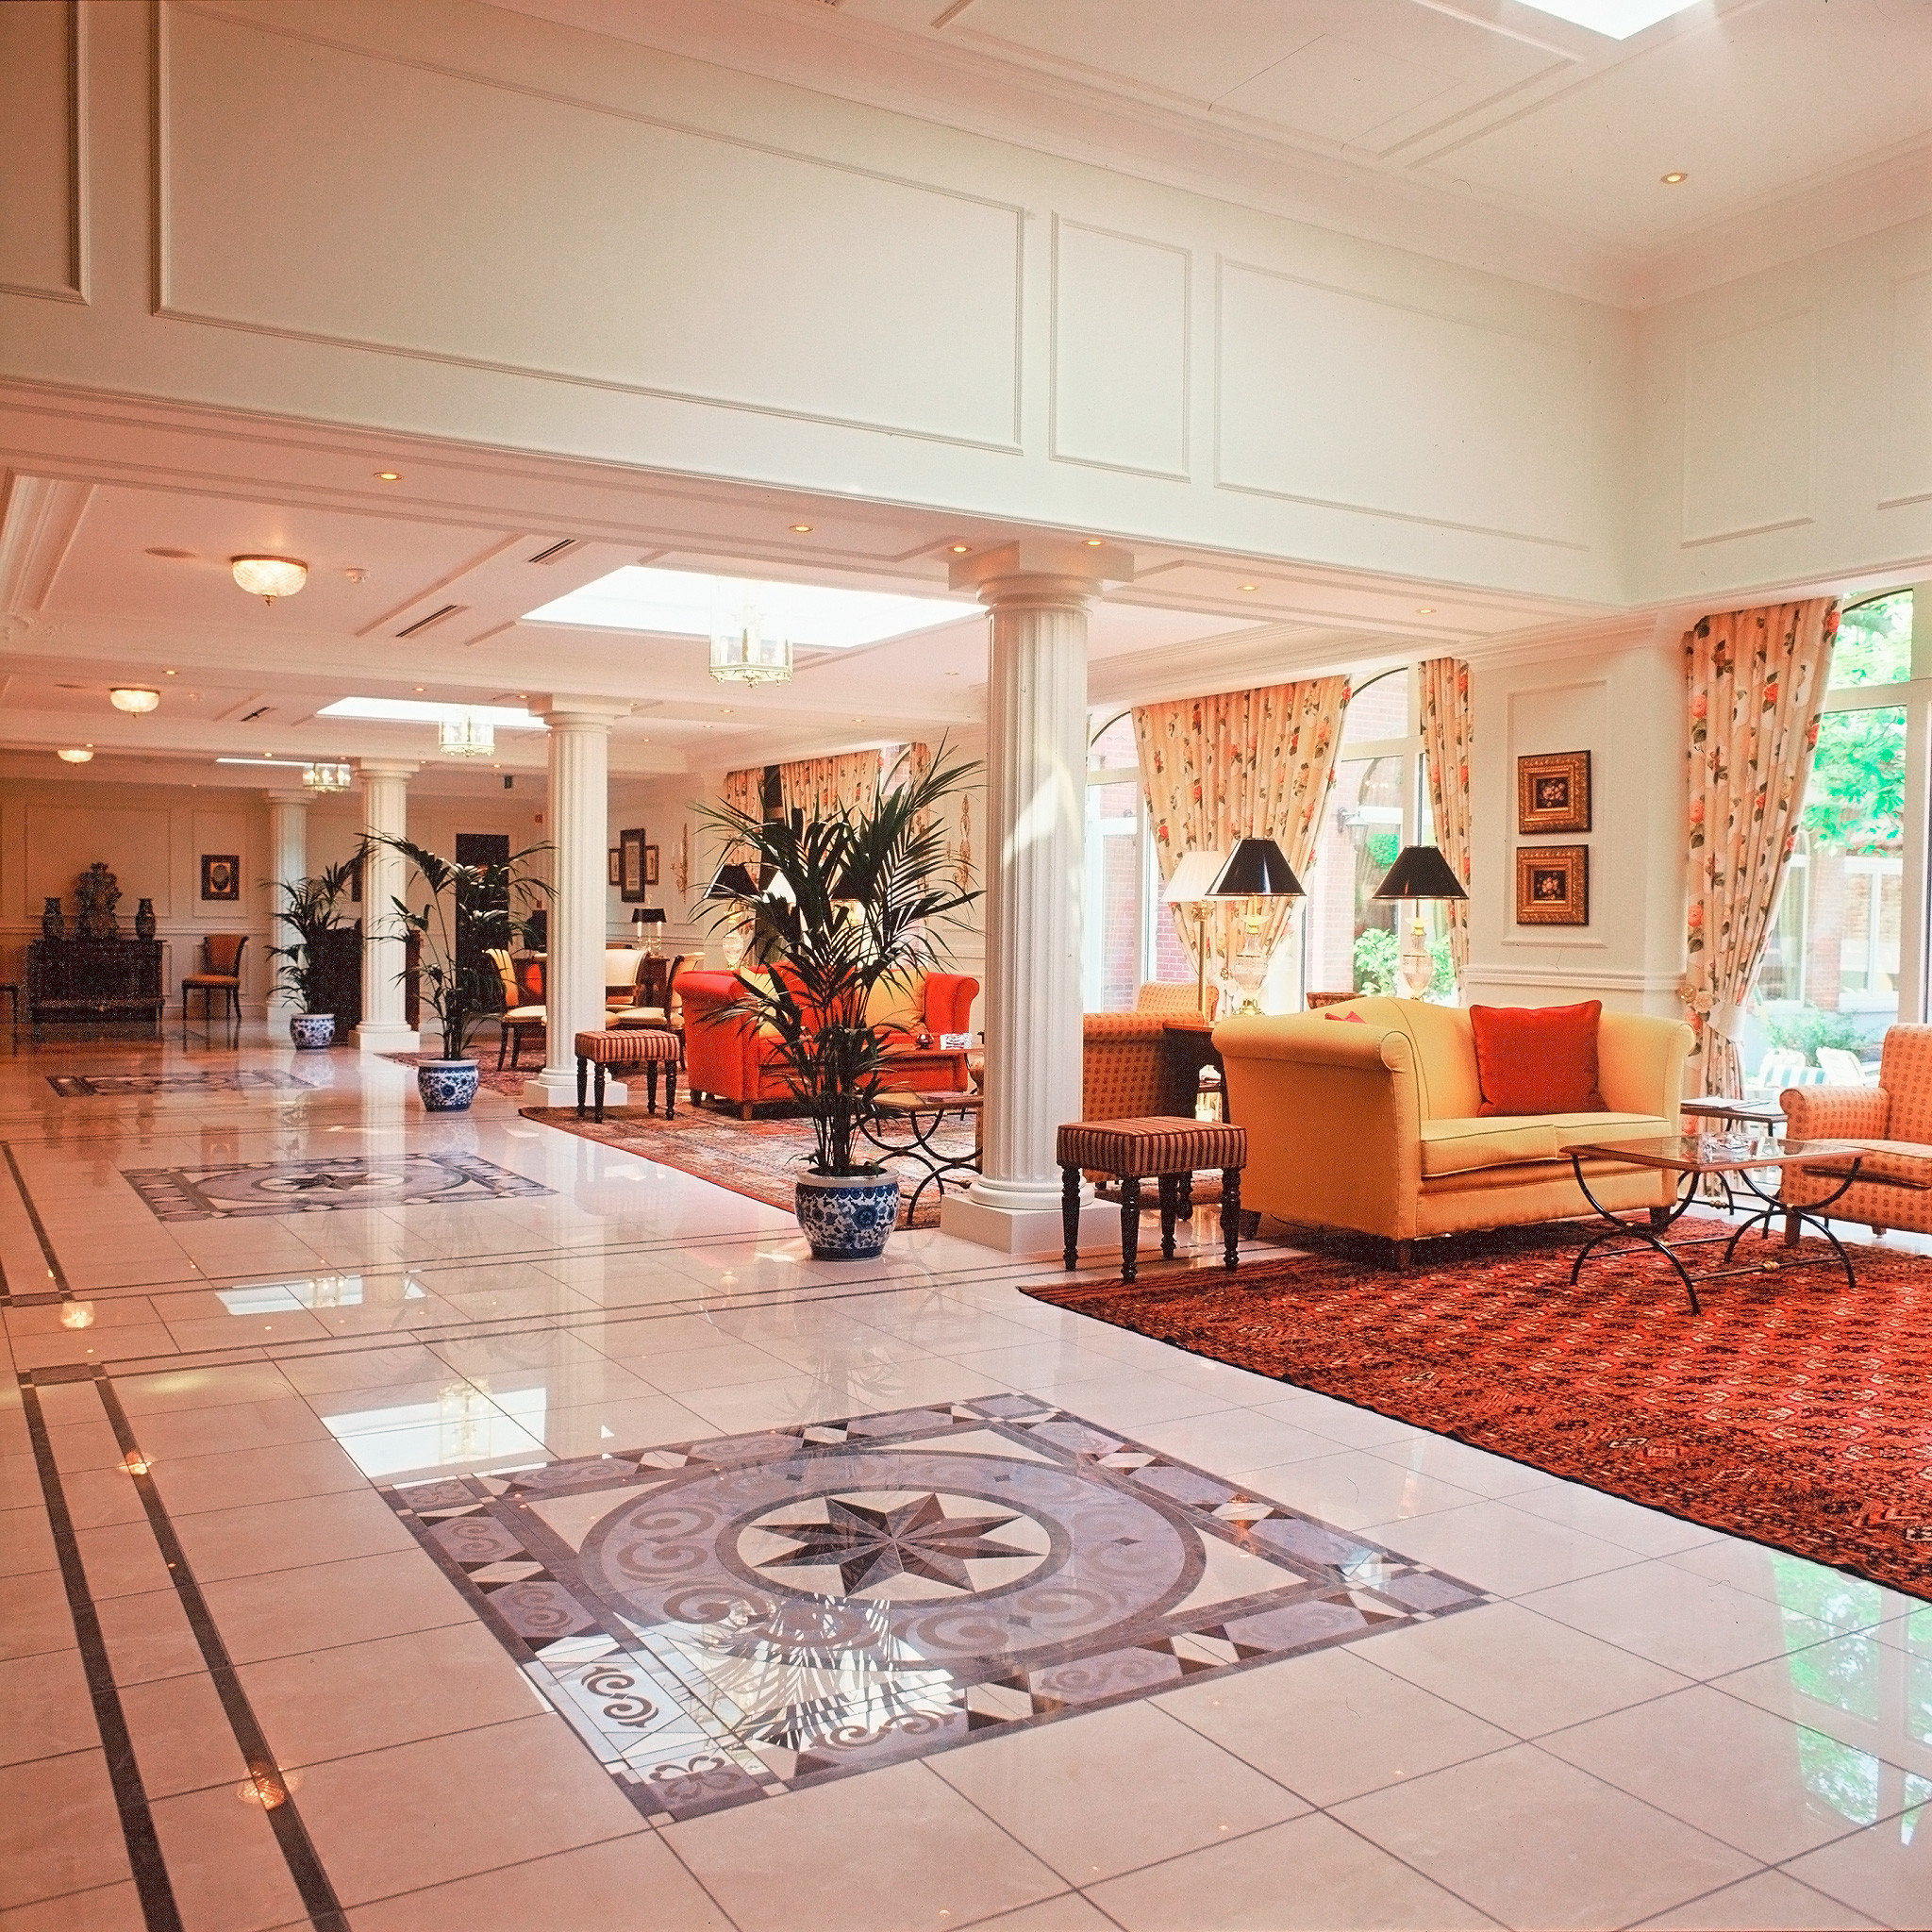 Lounge Luxury Lobby property shopping mall flooring living room retail swimming pool